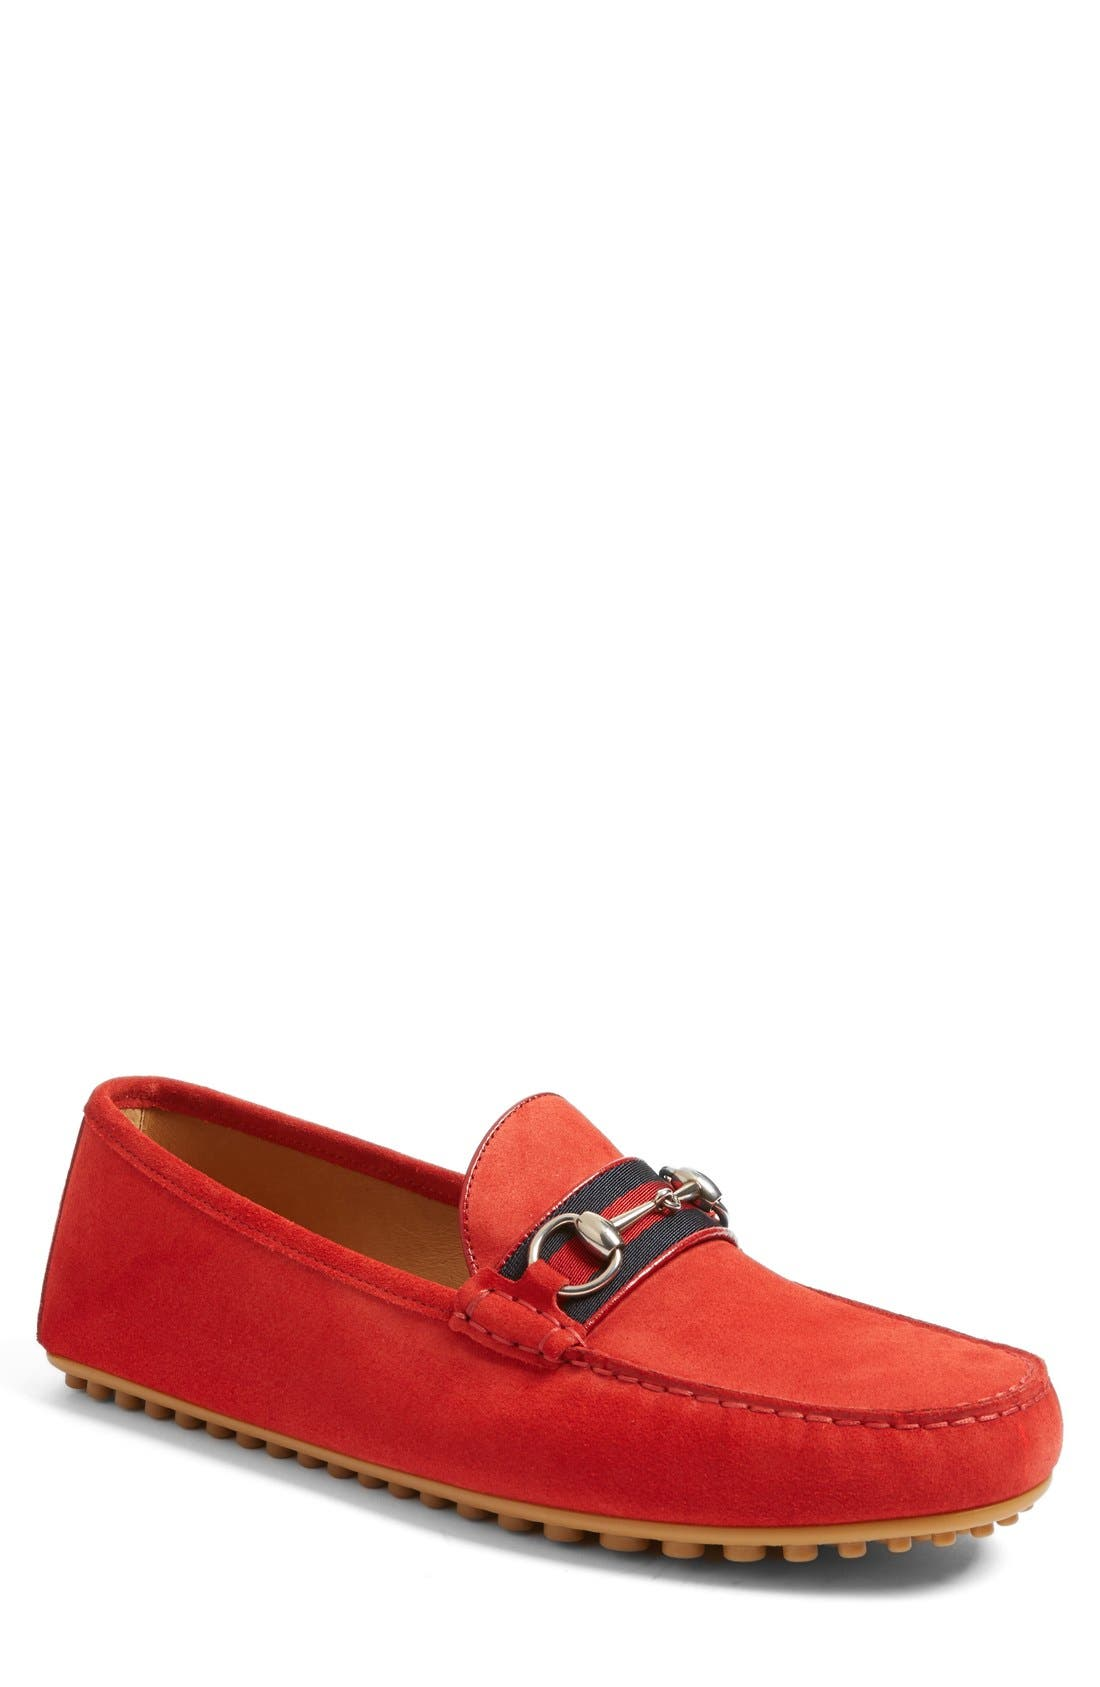 Main Image - Gucci Kanye Bit Loafer (Men)